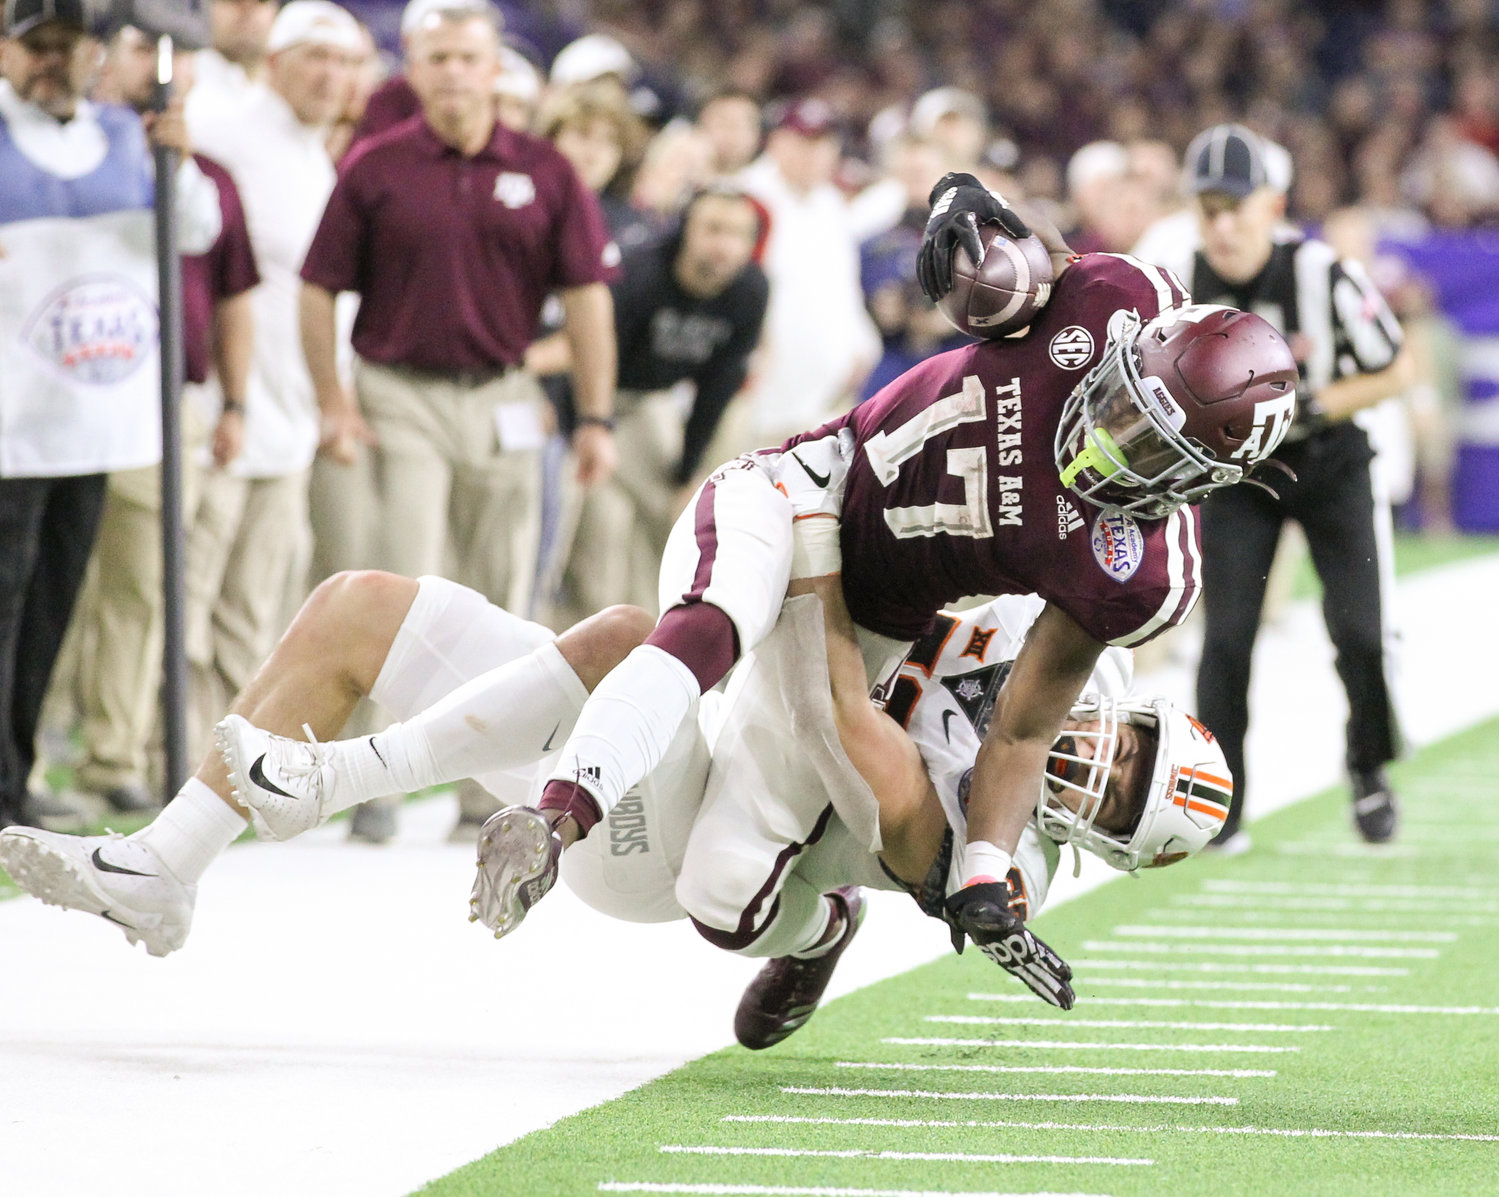 Texas A&M Aggies wide receiver Ainias Smith (17) is tackled by Oklahoma State Cowboys safety Malcolm Rodriguez (20) during an NCAA football bowl game between Texas A&M and Oklahoma State at NRG Stadium in Houston, Texas, on Dec. 27, 2019.